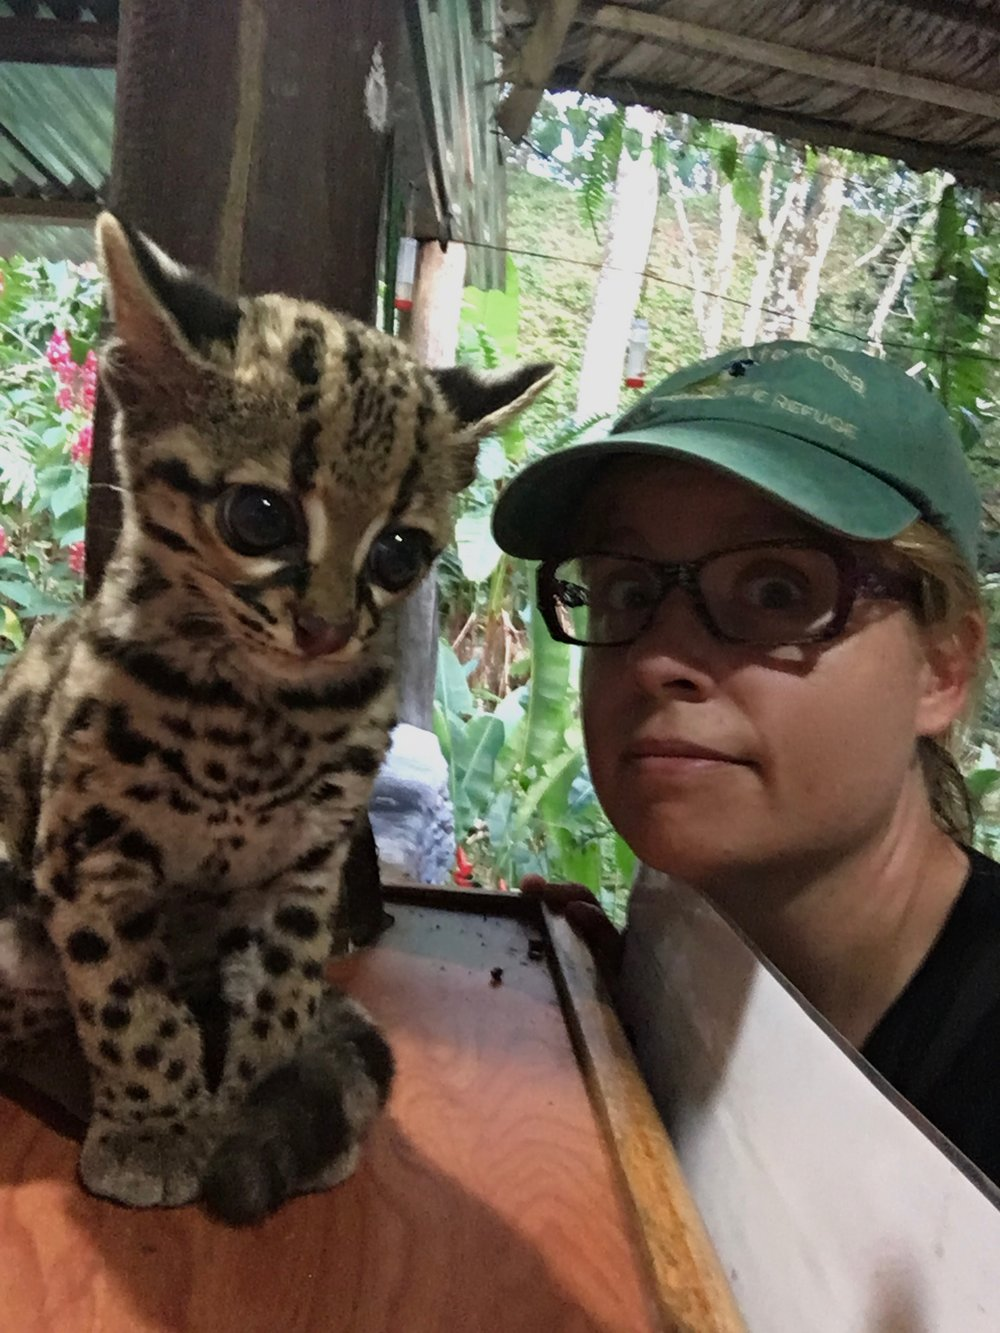 What else do you do when a baby ocelot hops on a bar? You take a selfie and post it on all of your social media accounts!